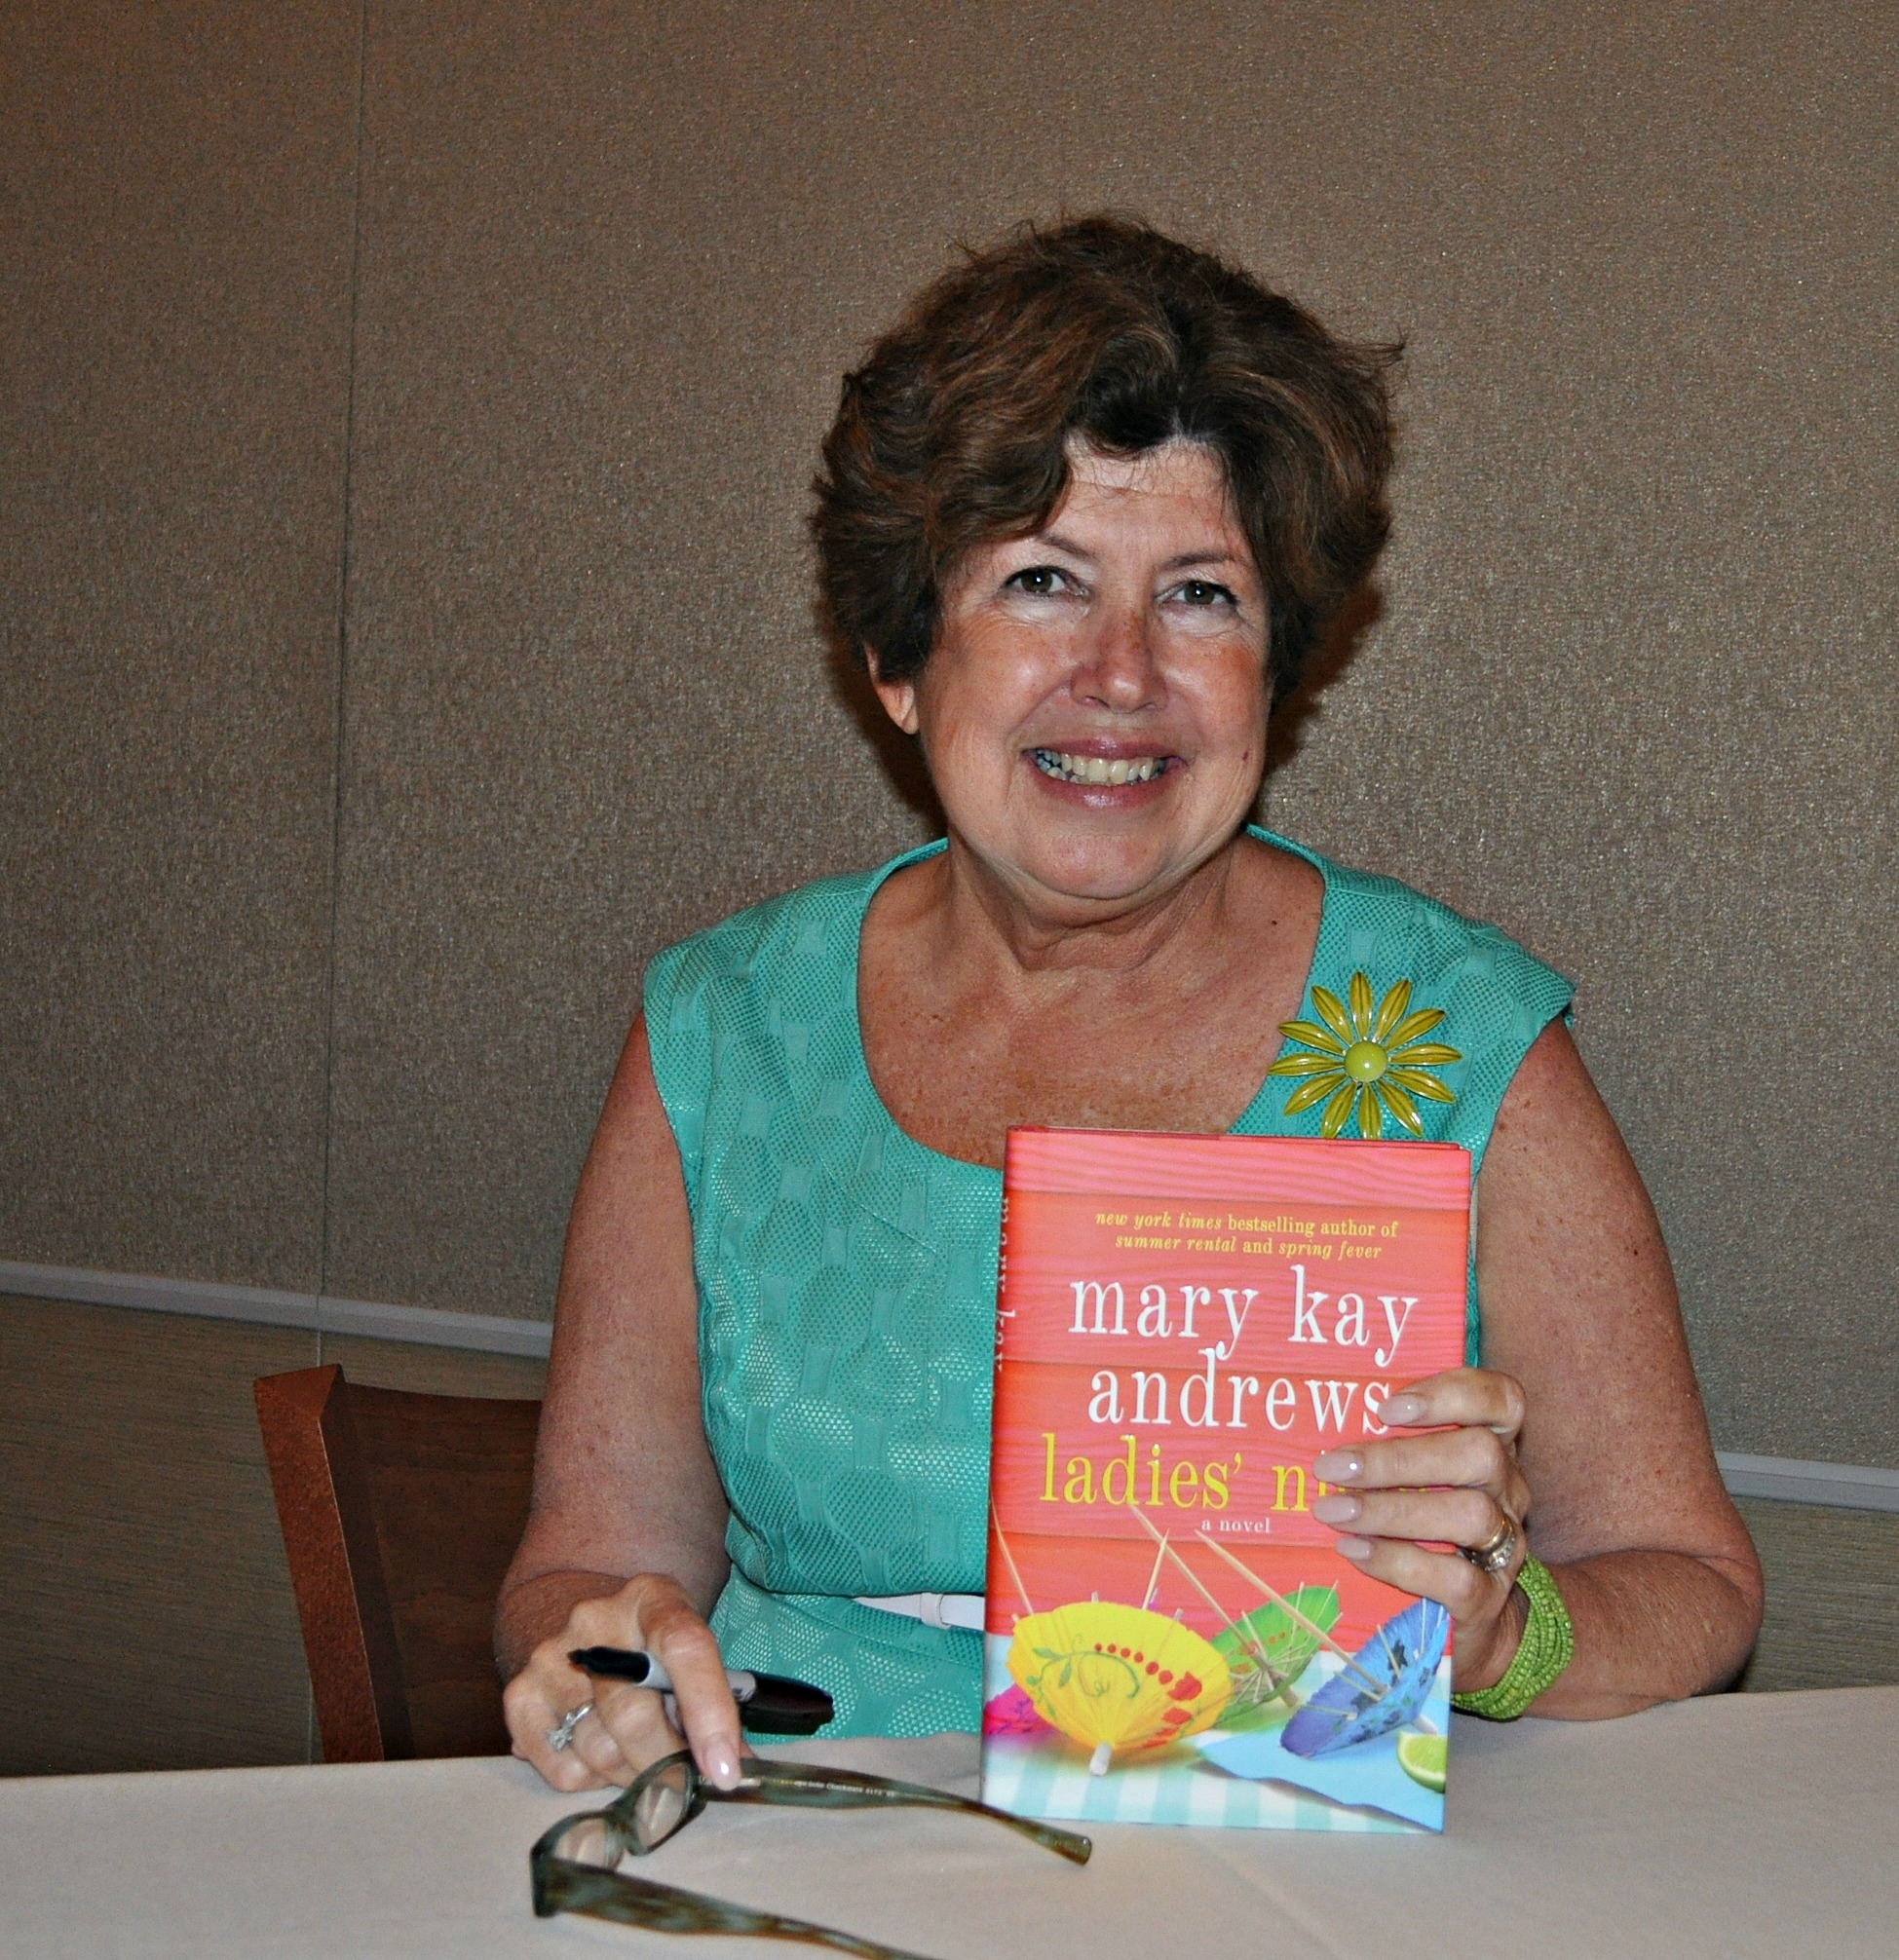 Author event and giveaway: Mary Kay Andrews